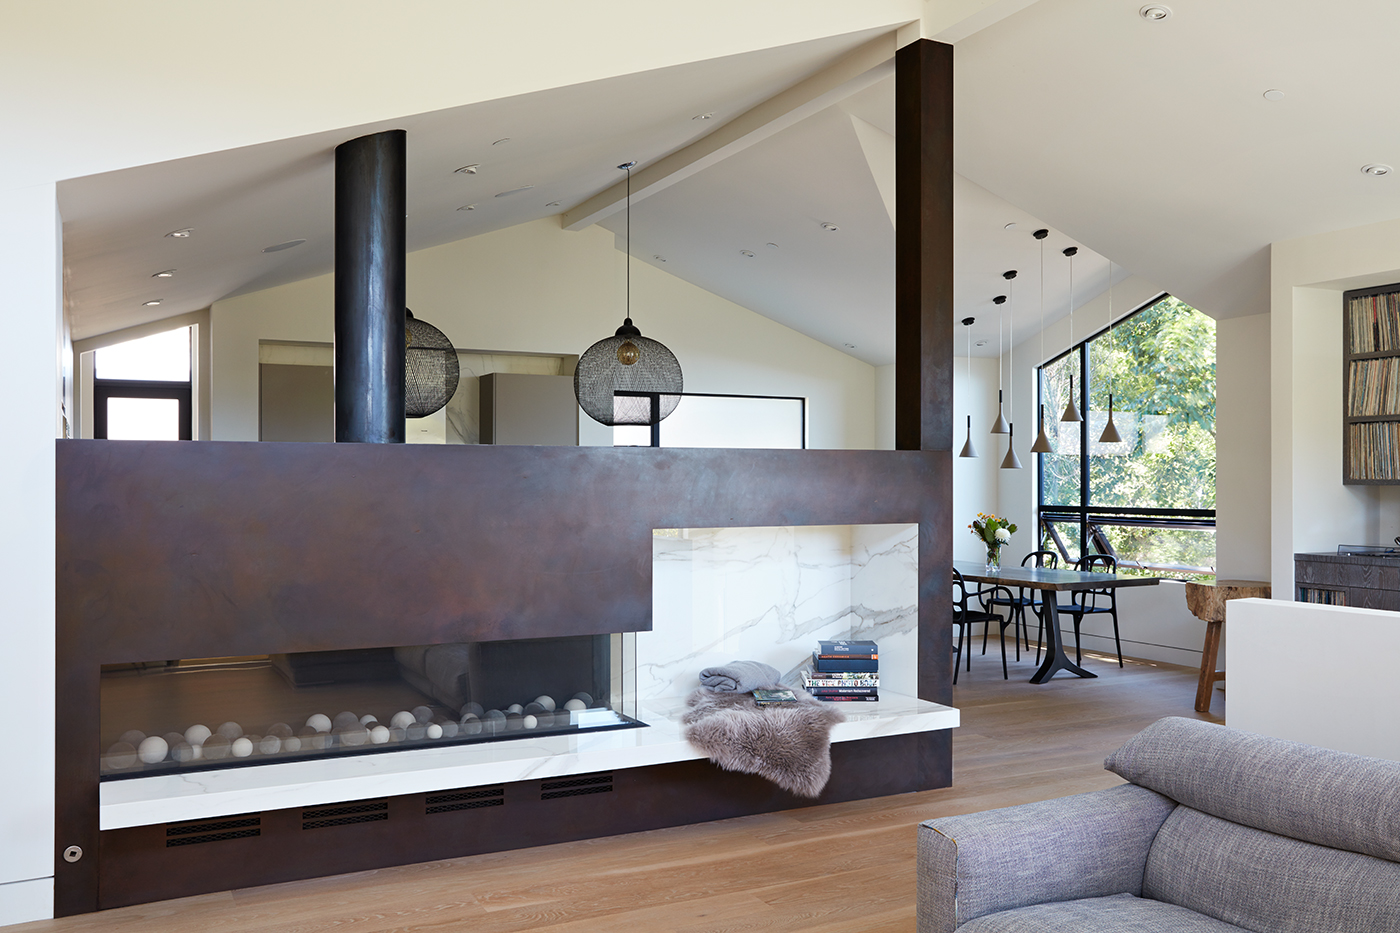 Thoughtful Design Details Warm Up a Modern Family Home in Northern California - Dwell Magazine | September 17, 2017